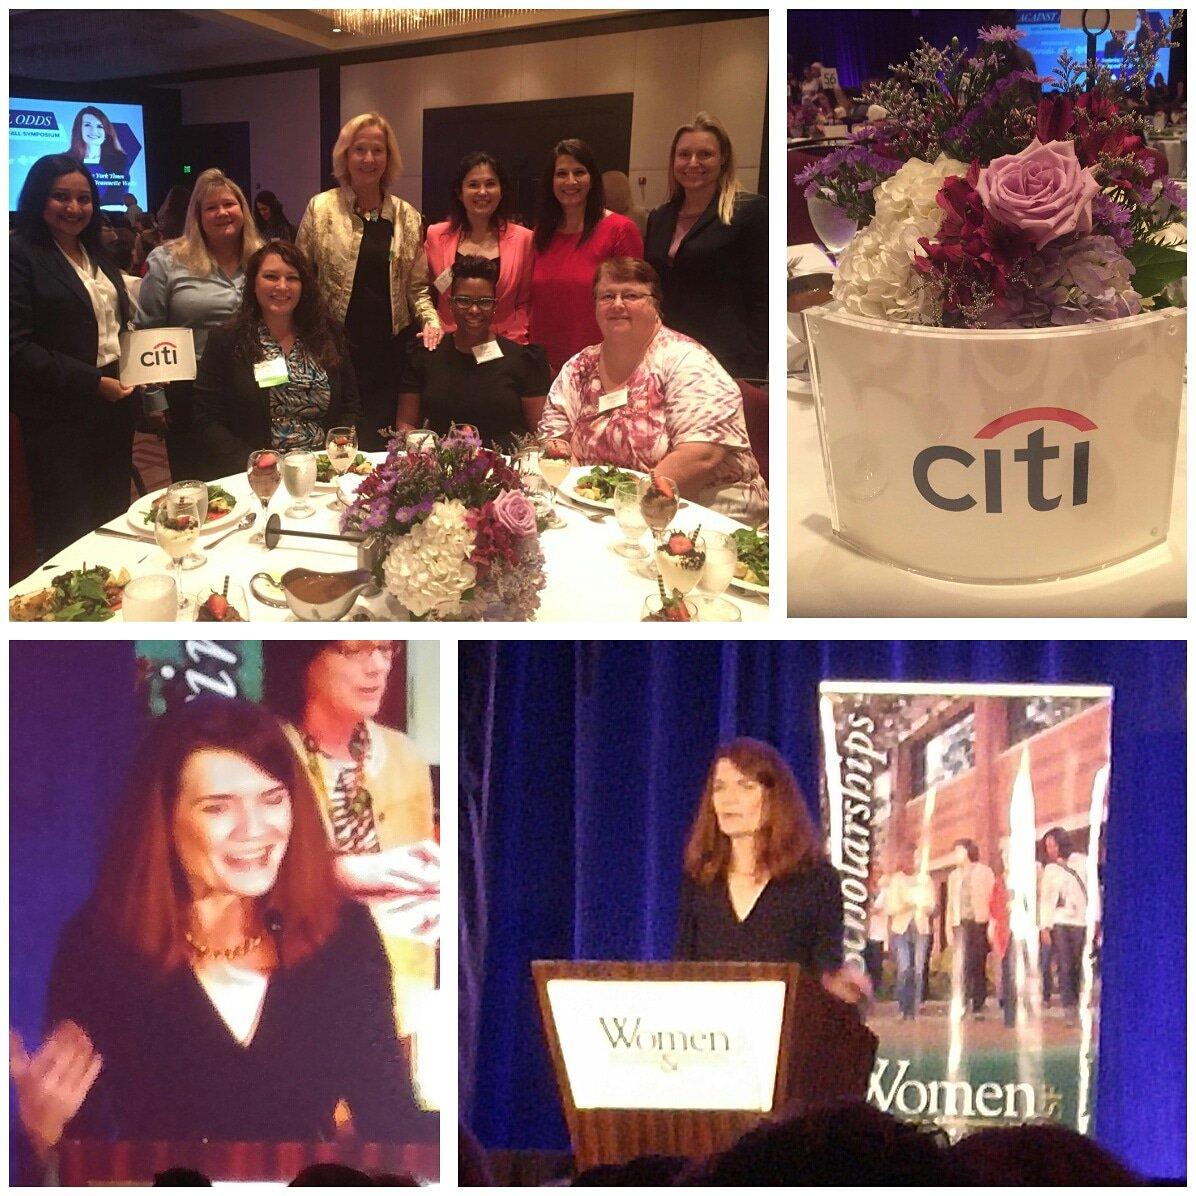 Wonderful day with @citi colleagues at the annual USF Women in Leadership and Philanthropy fall symposium. Keynote speaker Jeannette Walls ('The Glass Castle') was endearing, humble, witty and inspiring. @usf_wlp #wlpsymp #LifeAtCiti #CitiAmbassador